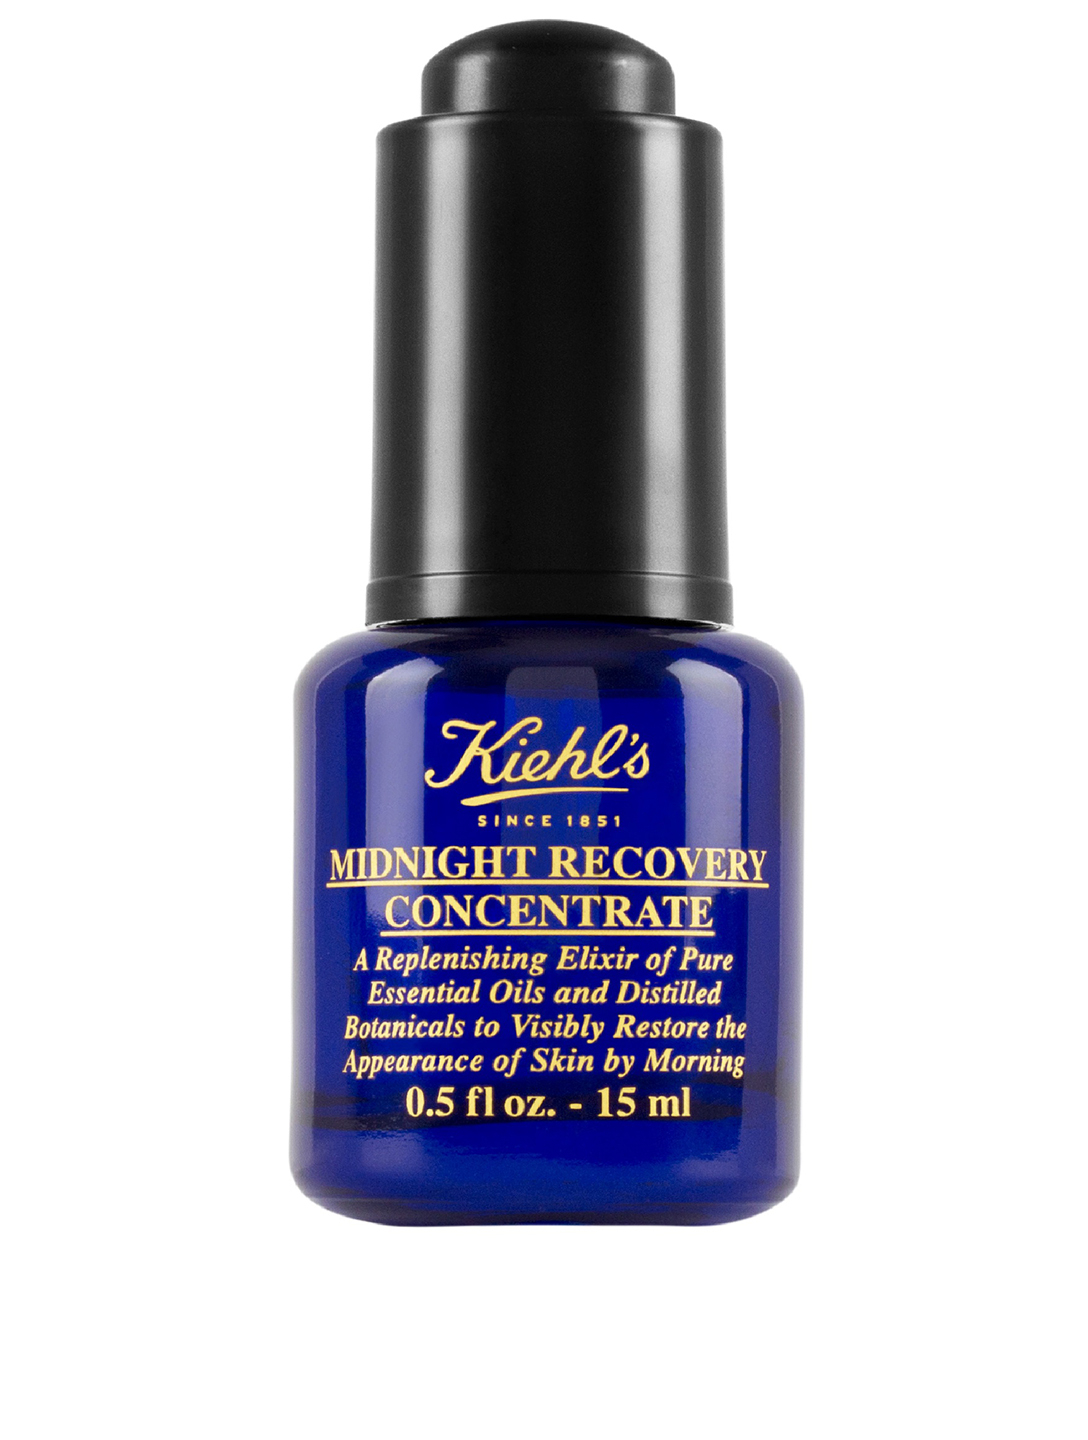 KIEHL'S Midnight Recovery Concentrate Beauty